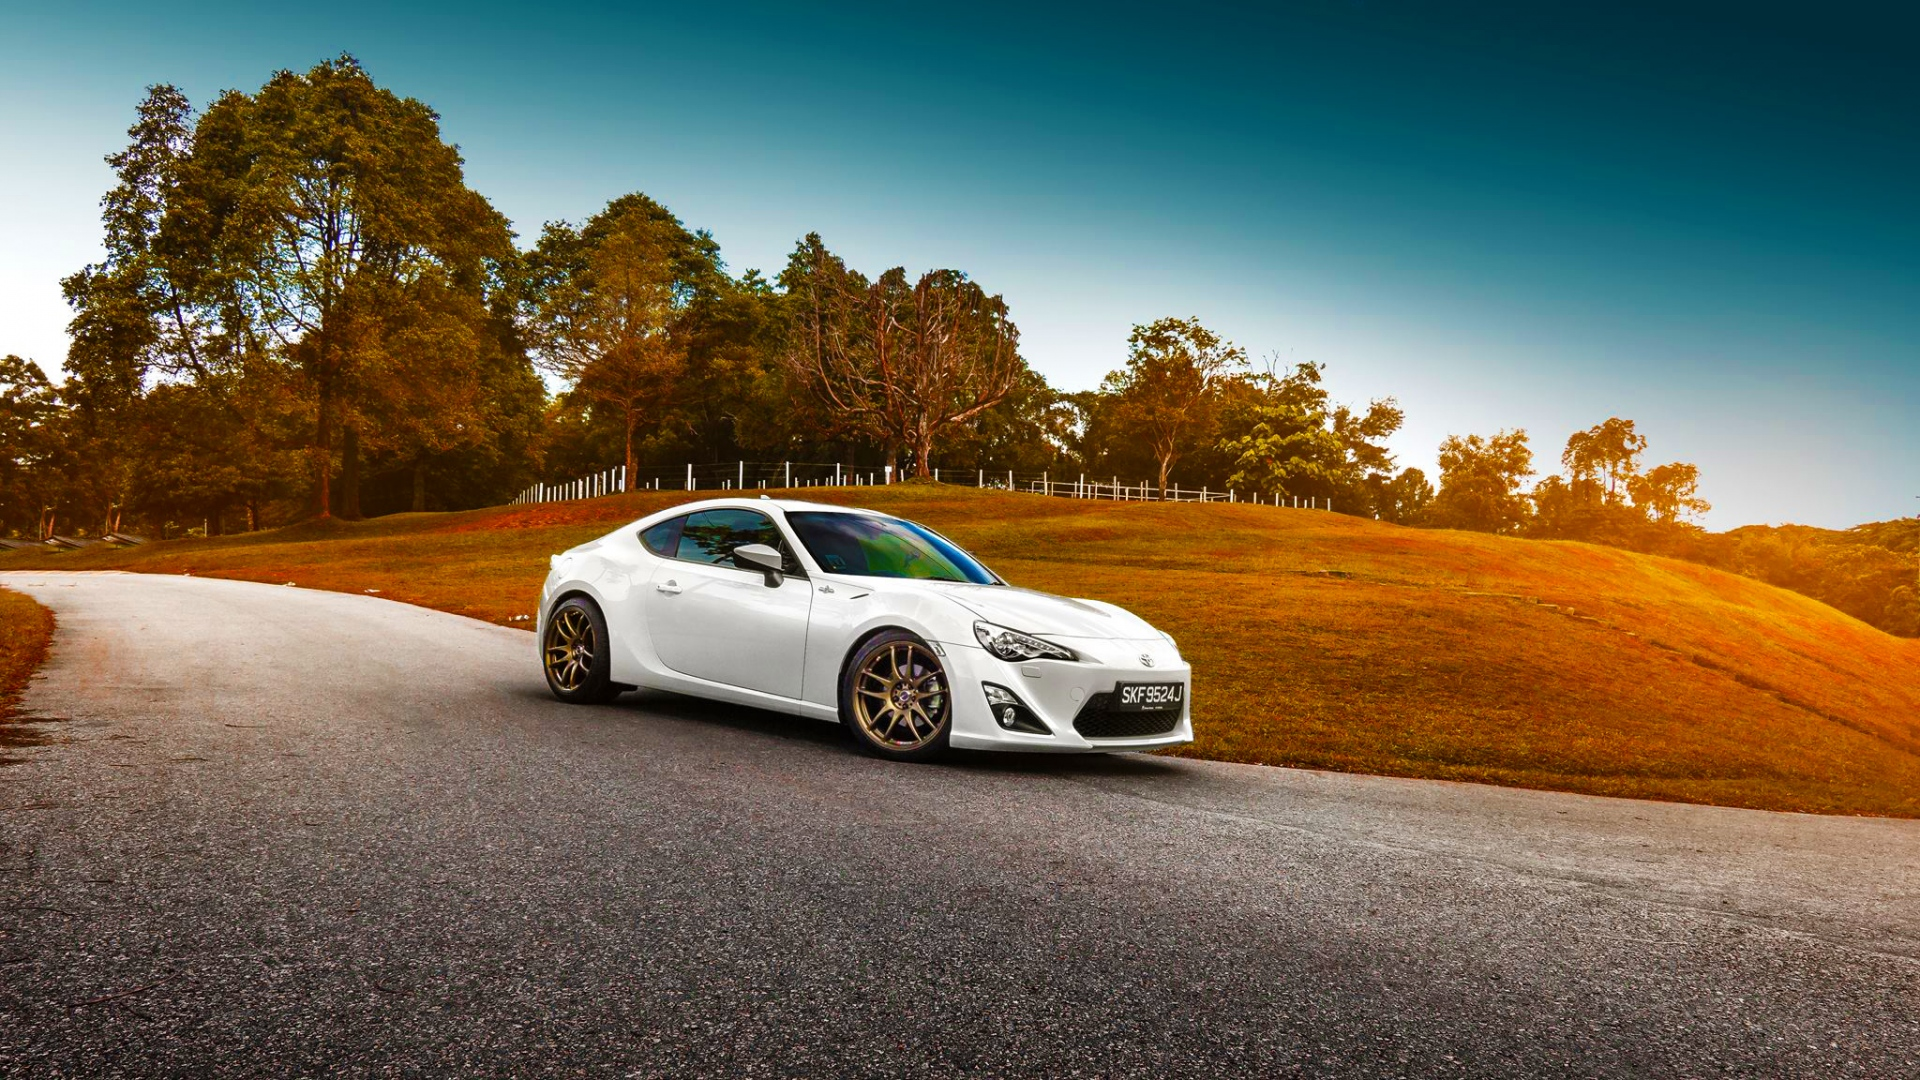 Download Wallpaper 1920x1080 Toyota Gt86 White Side 1920x1080